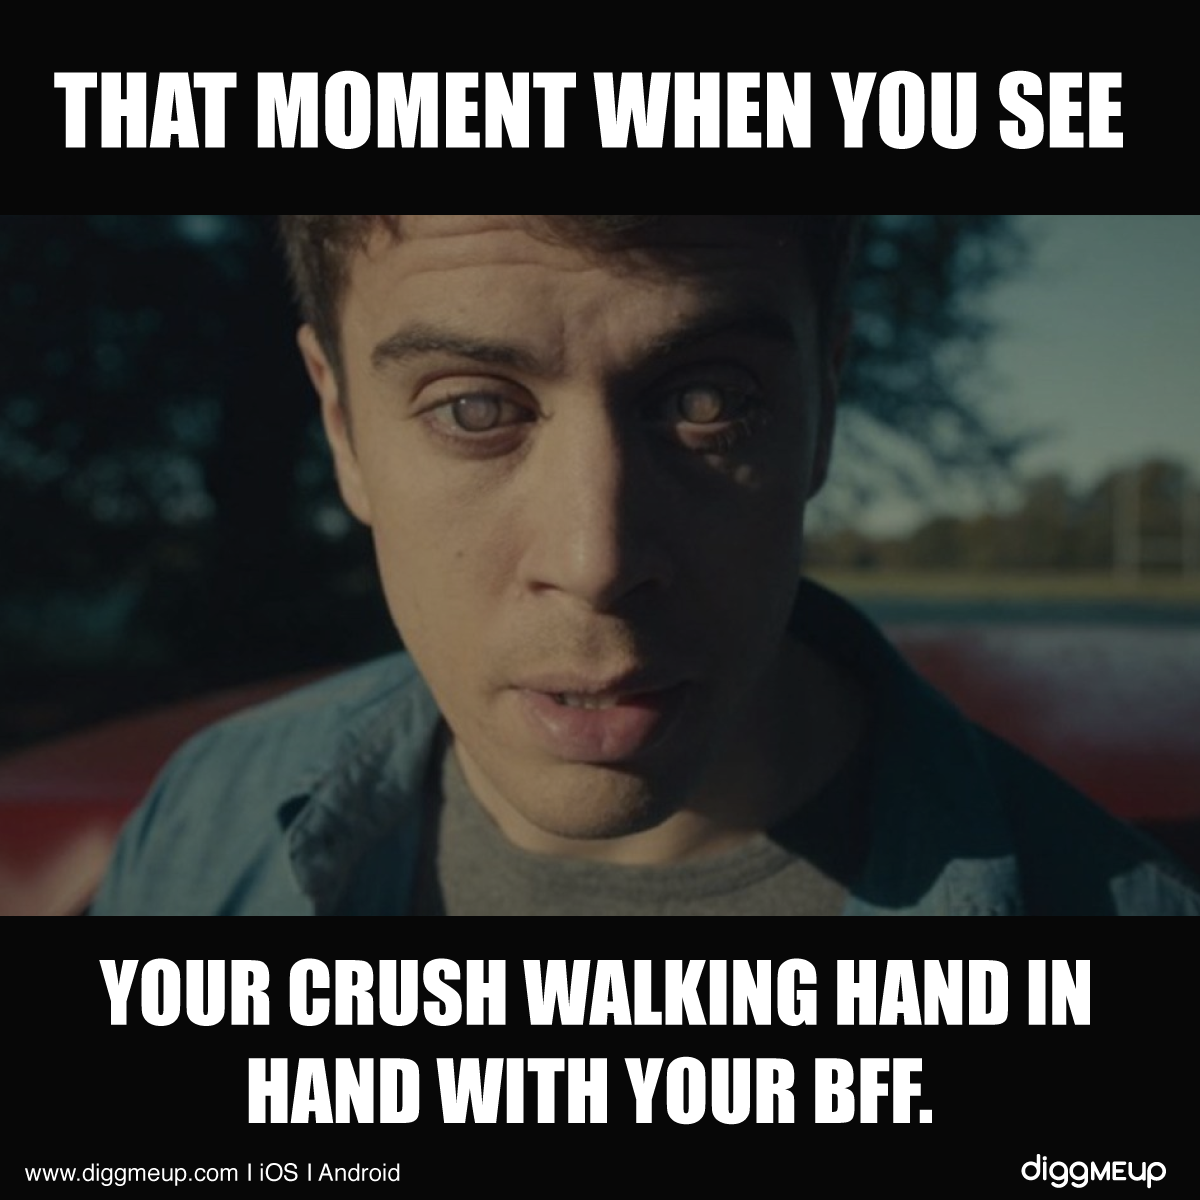 That Moment When You See Your Crush Walking Hand In Hand With Your Bff Meme For The Day Humor Omg Funny L Funny Crush Memes Laughing So Hard Crush Memes